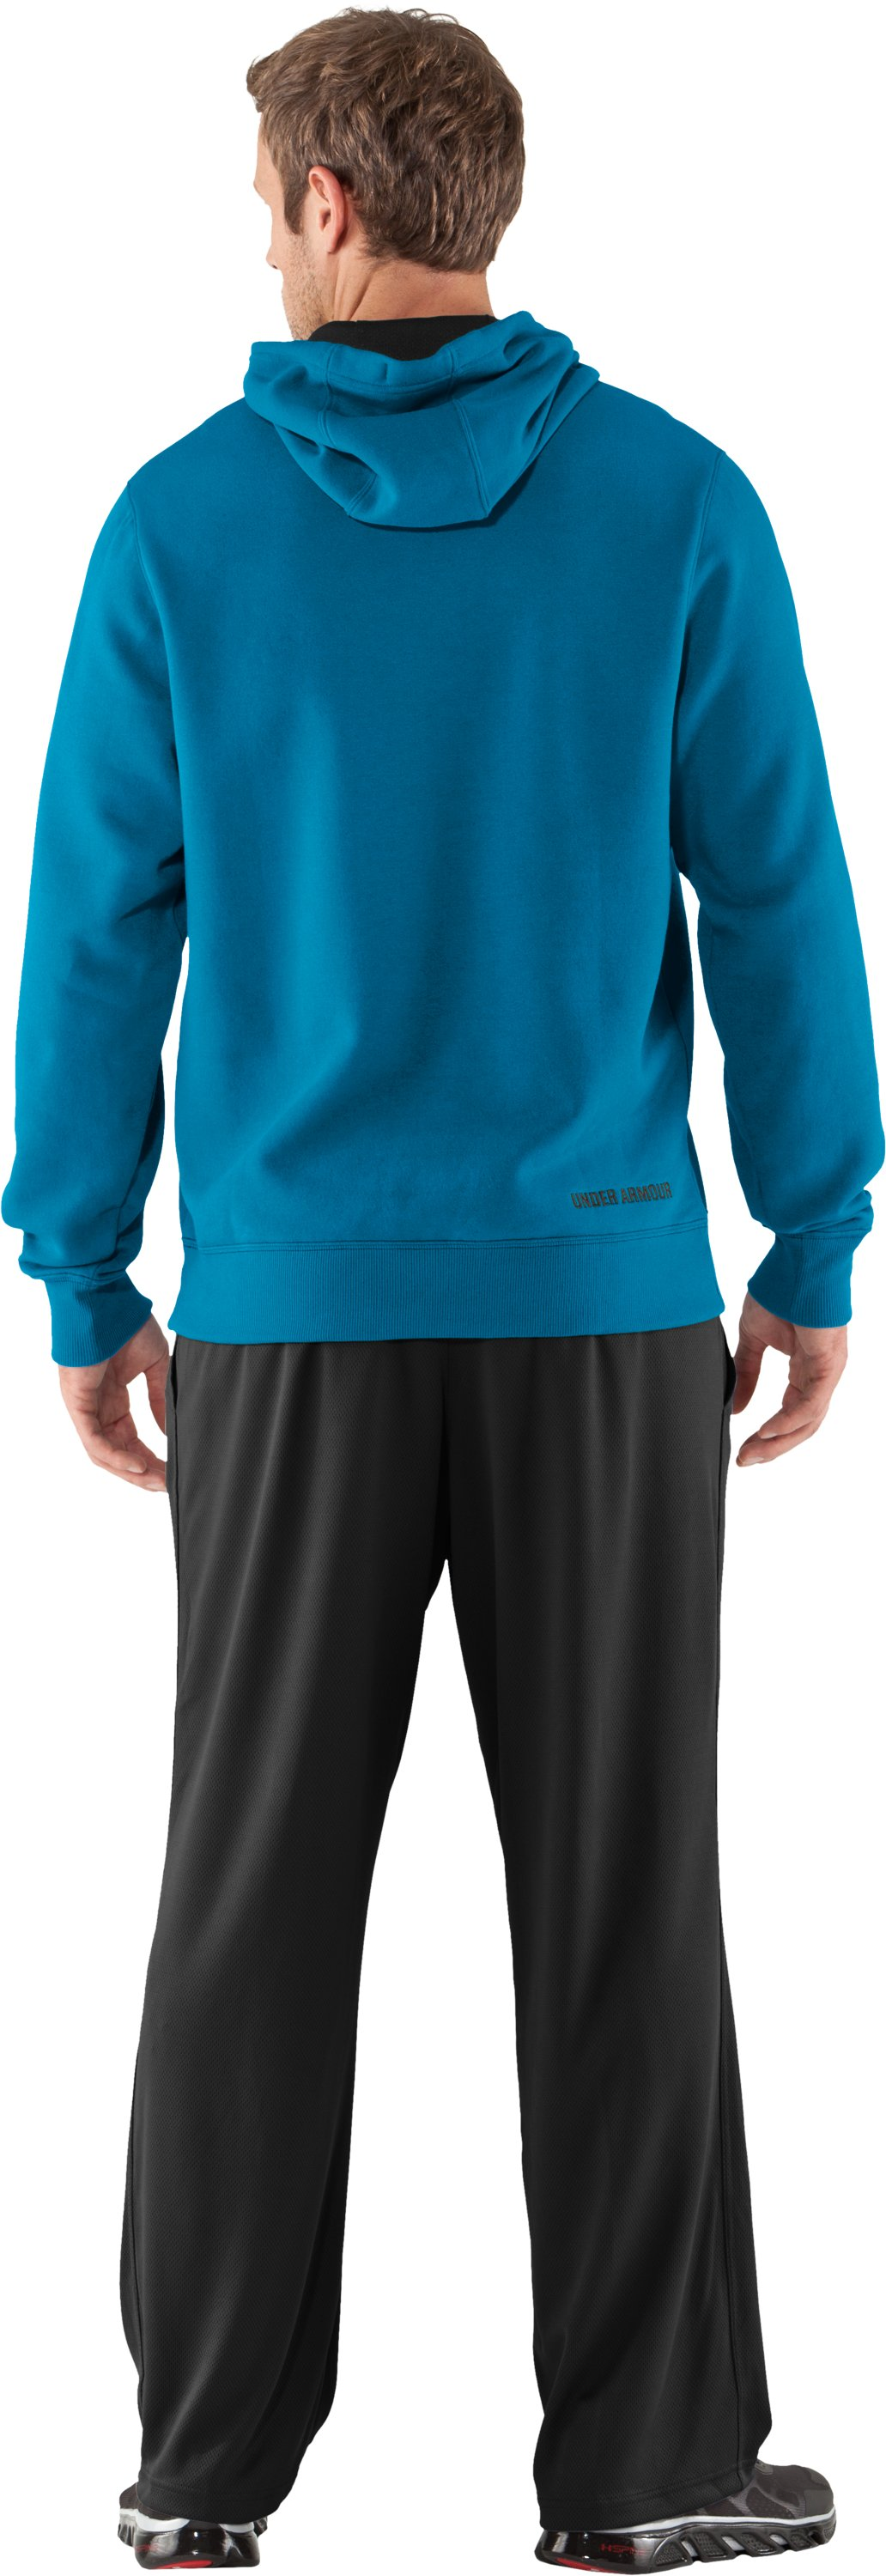 Men's Charged Cotton® Storm Transit Hoodie, SNORKEL, Back